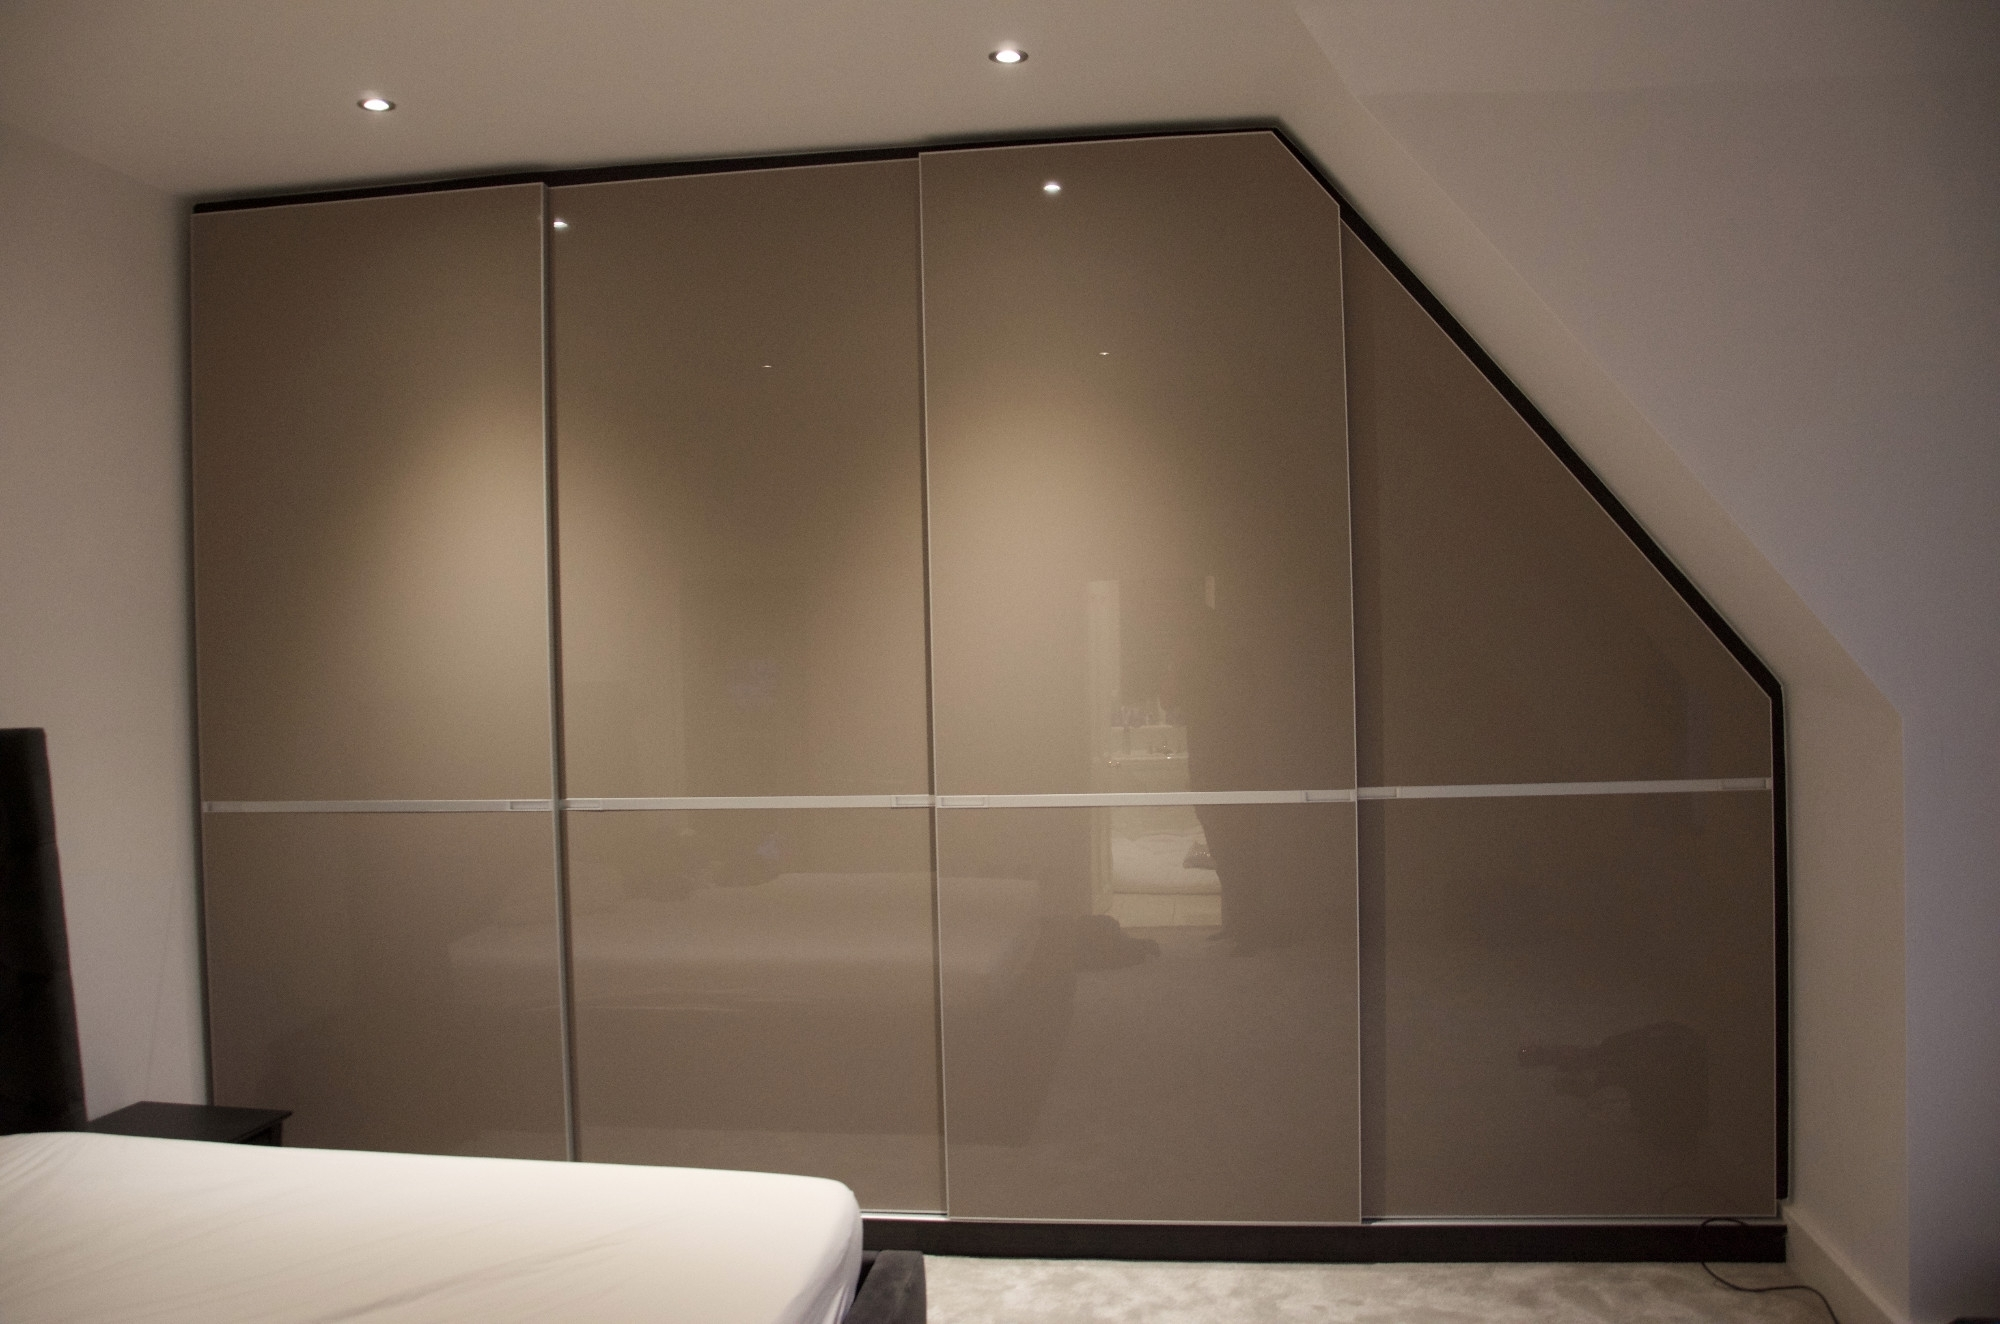 Glossy Wardrobes Within Best And Newest Sloping Ceiling Sliding Wardrobe Infisso Range, Enfield (View 5 of 15)